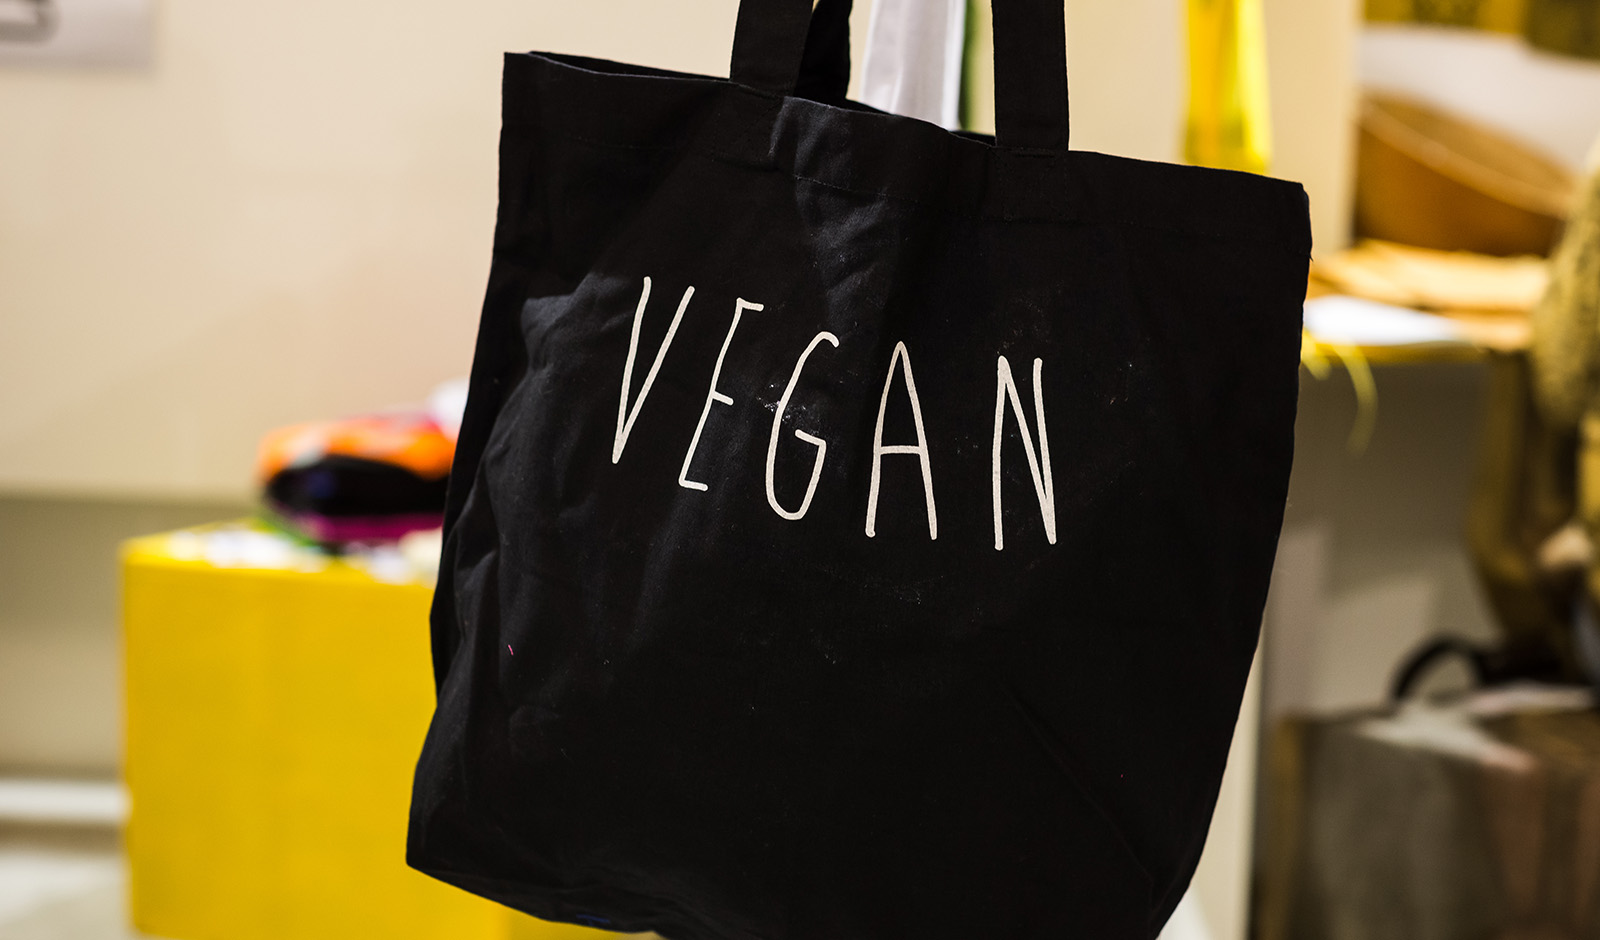 cruelty-free-and-eco-friendly-makeup-bags-bag-with-vegan-written-on-it